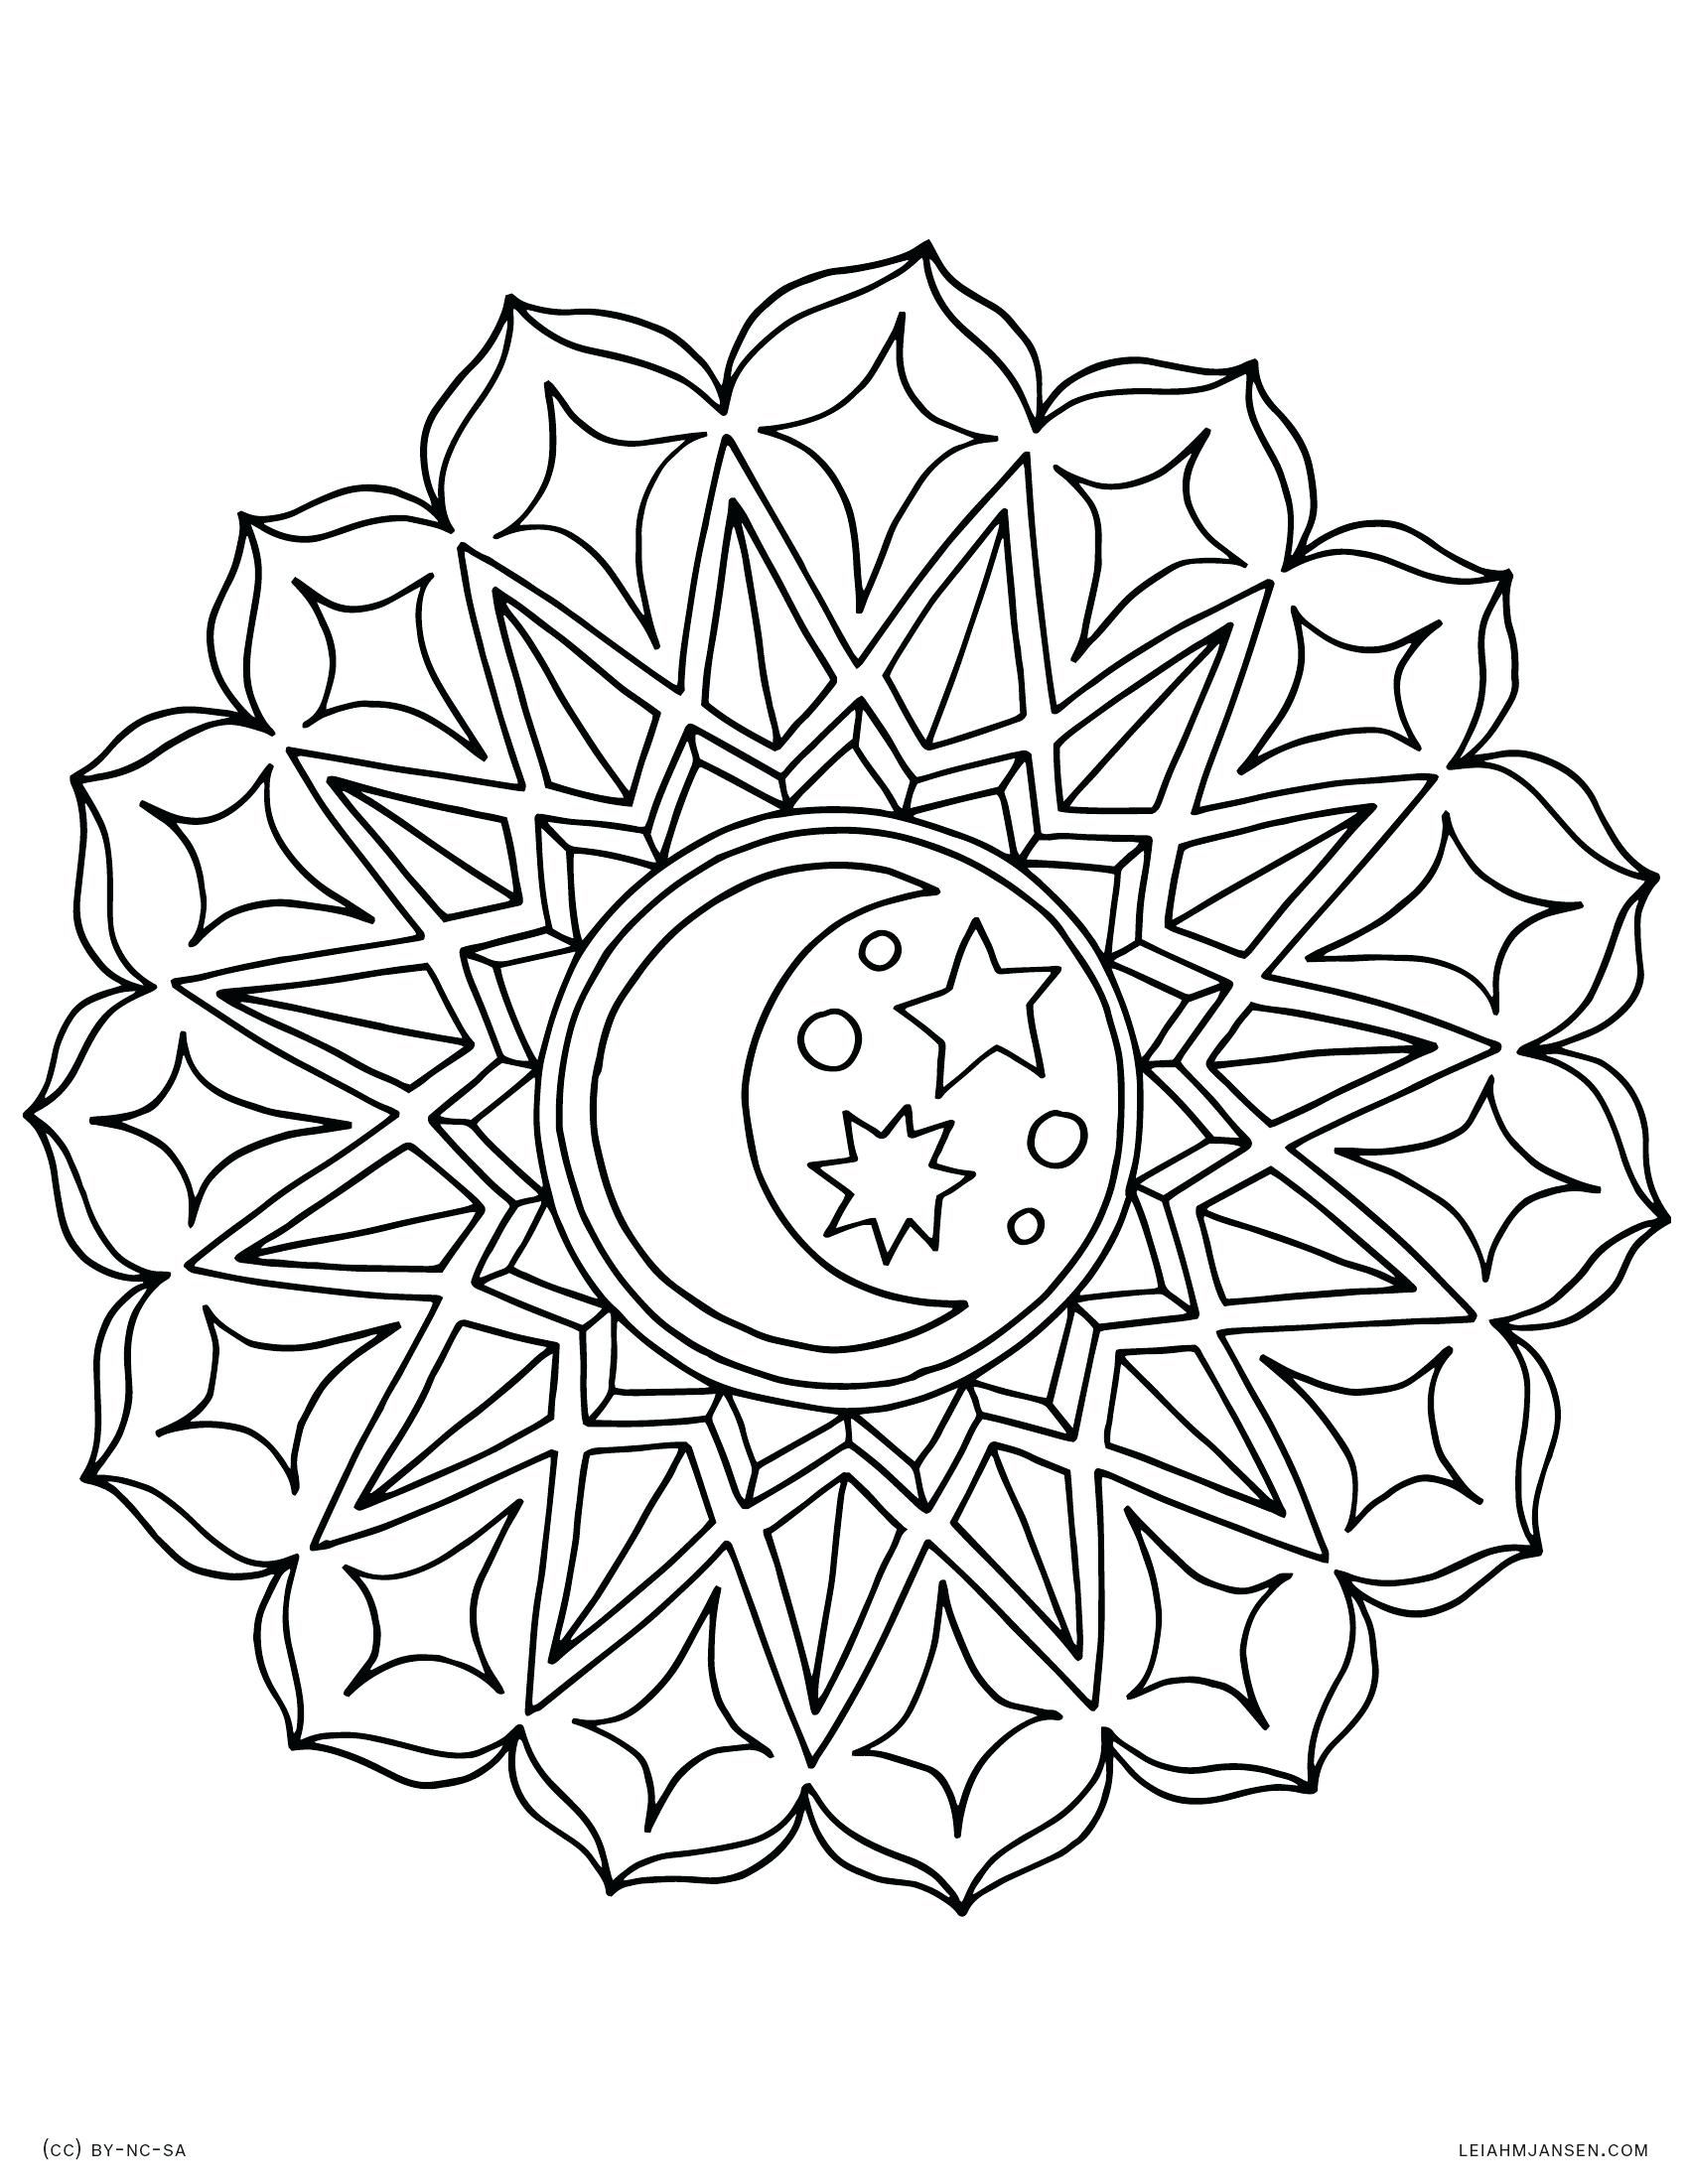 Celestial Moon Coloring Pages For Adults